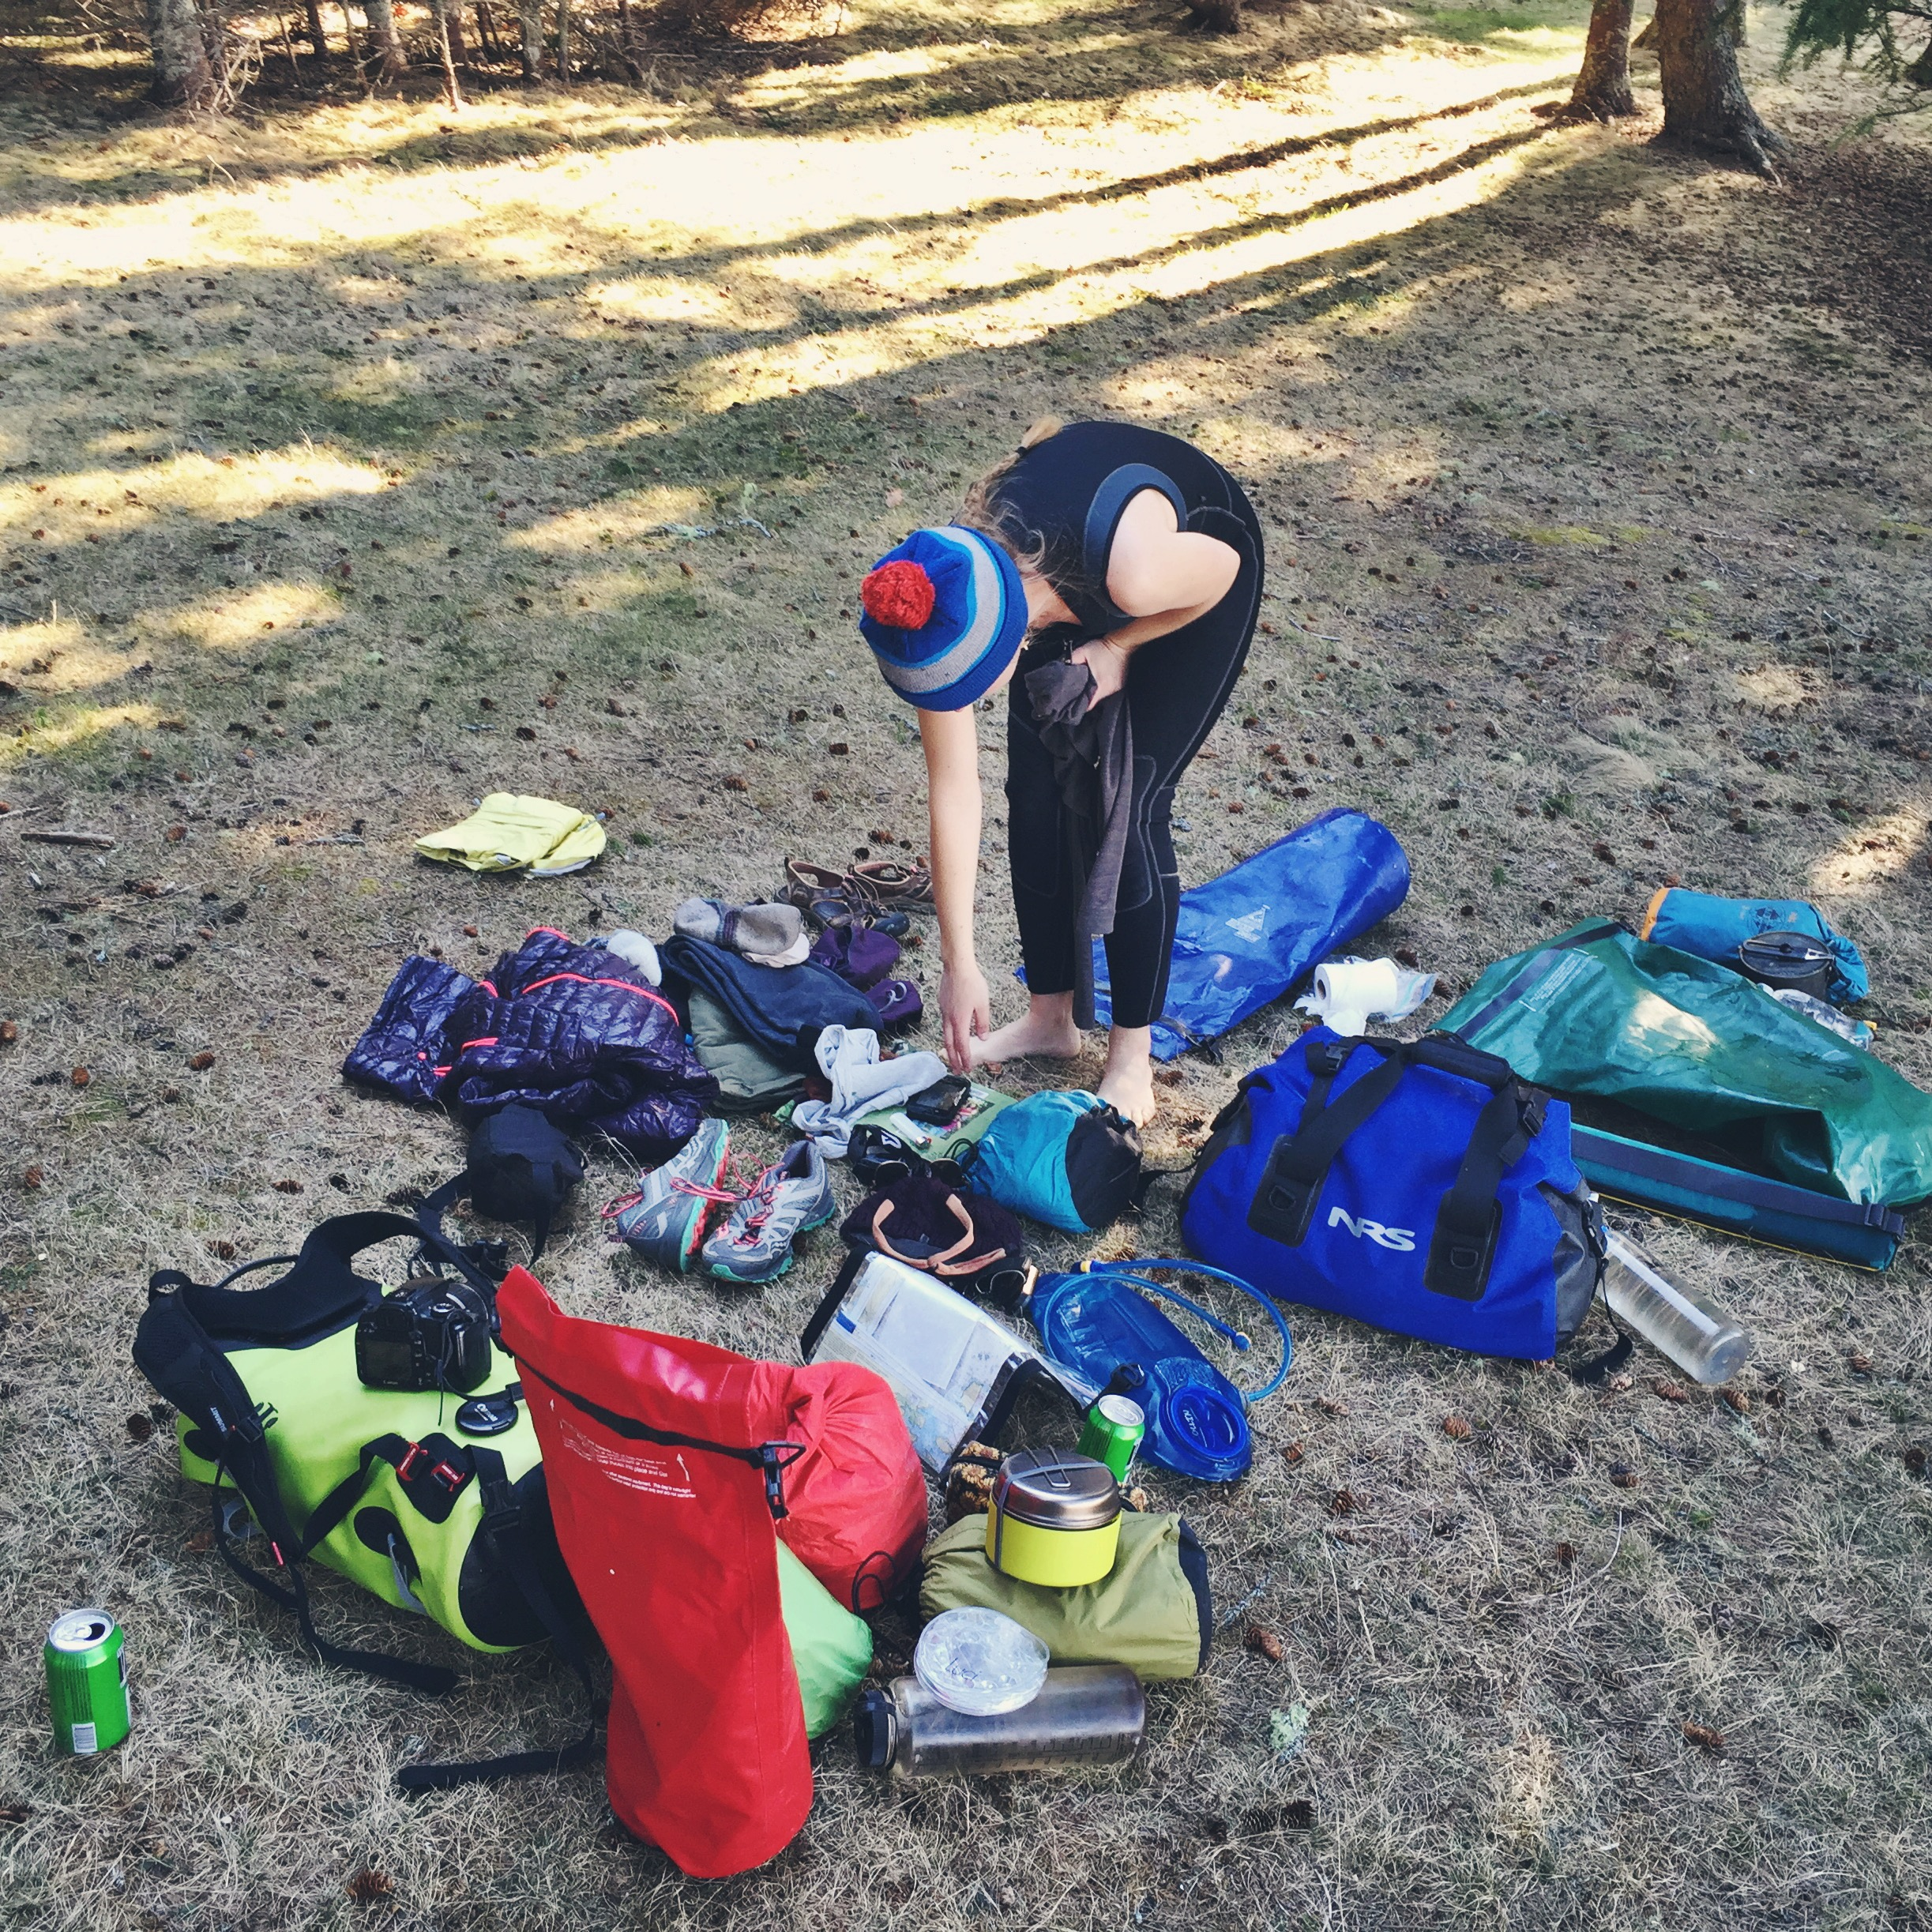 With boats unloaded, gear exploded, it's time to make camp!